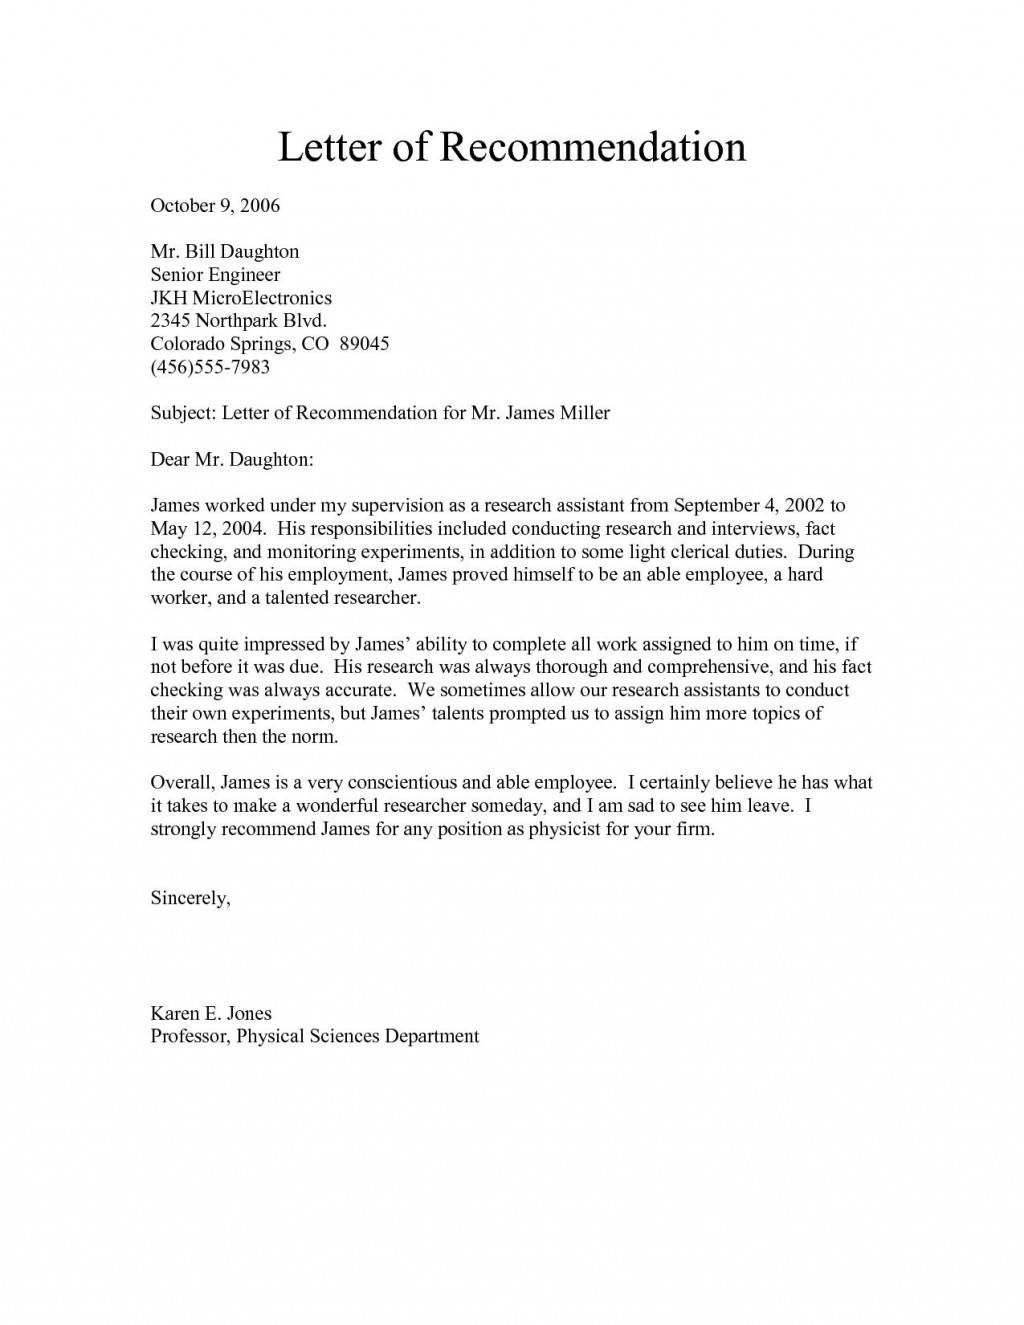 001 Amazing Letter Or Recommendation Template Inspiration  Of For Scholarship From Teacher Reference Employee AideLarge